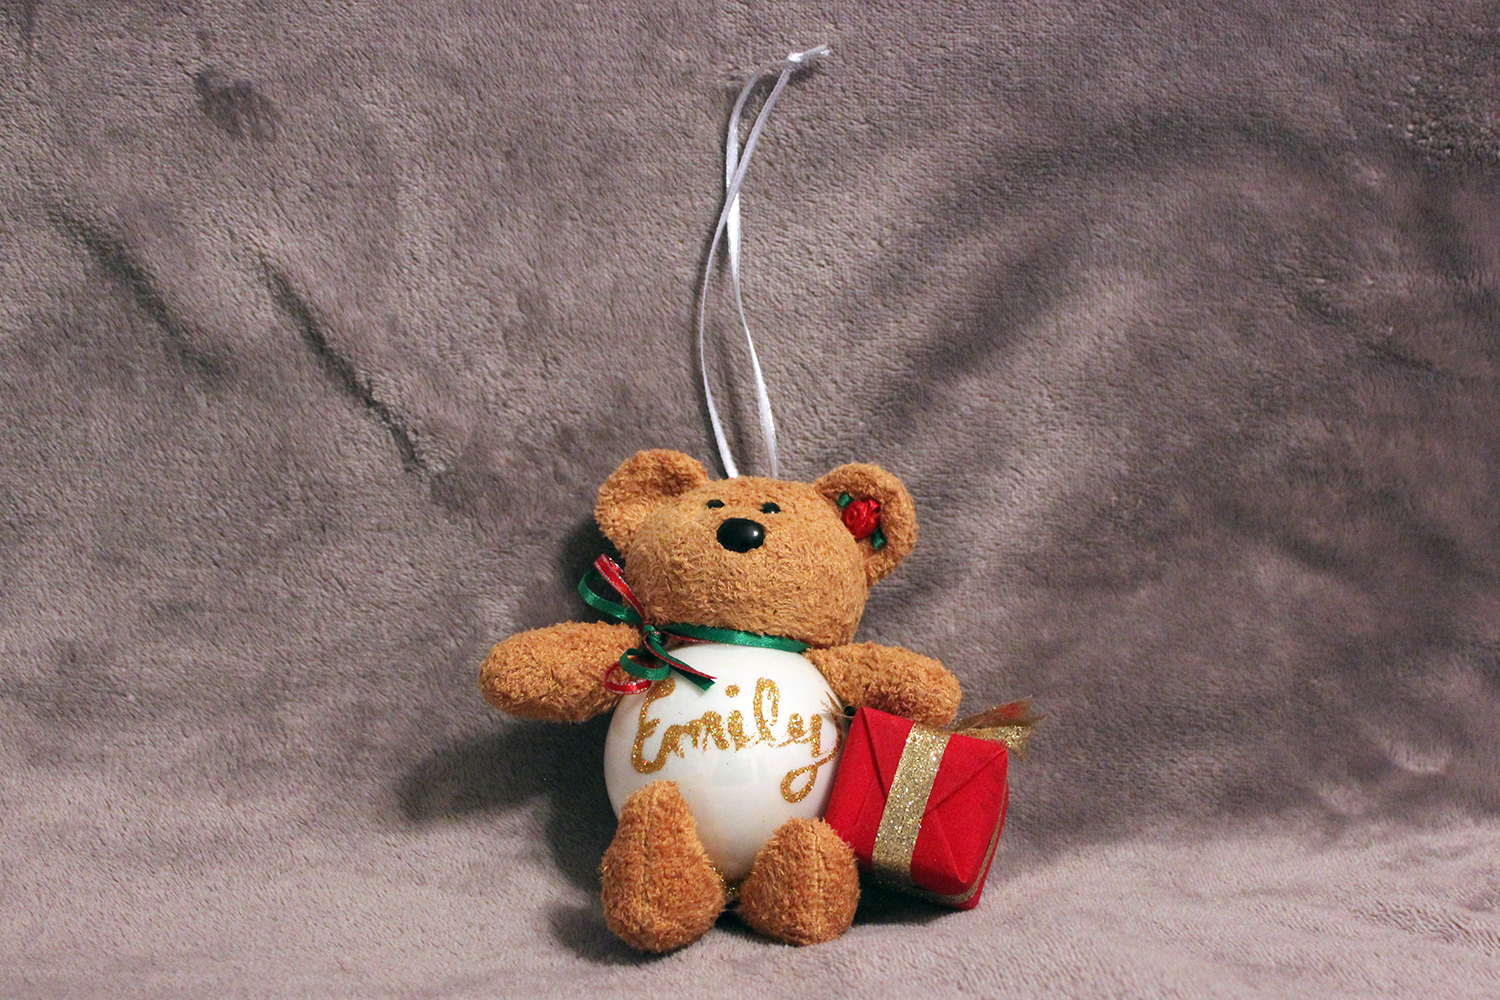 This beanie baby teddy bear was converted into an ornament.